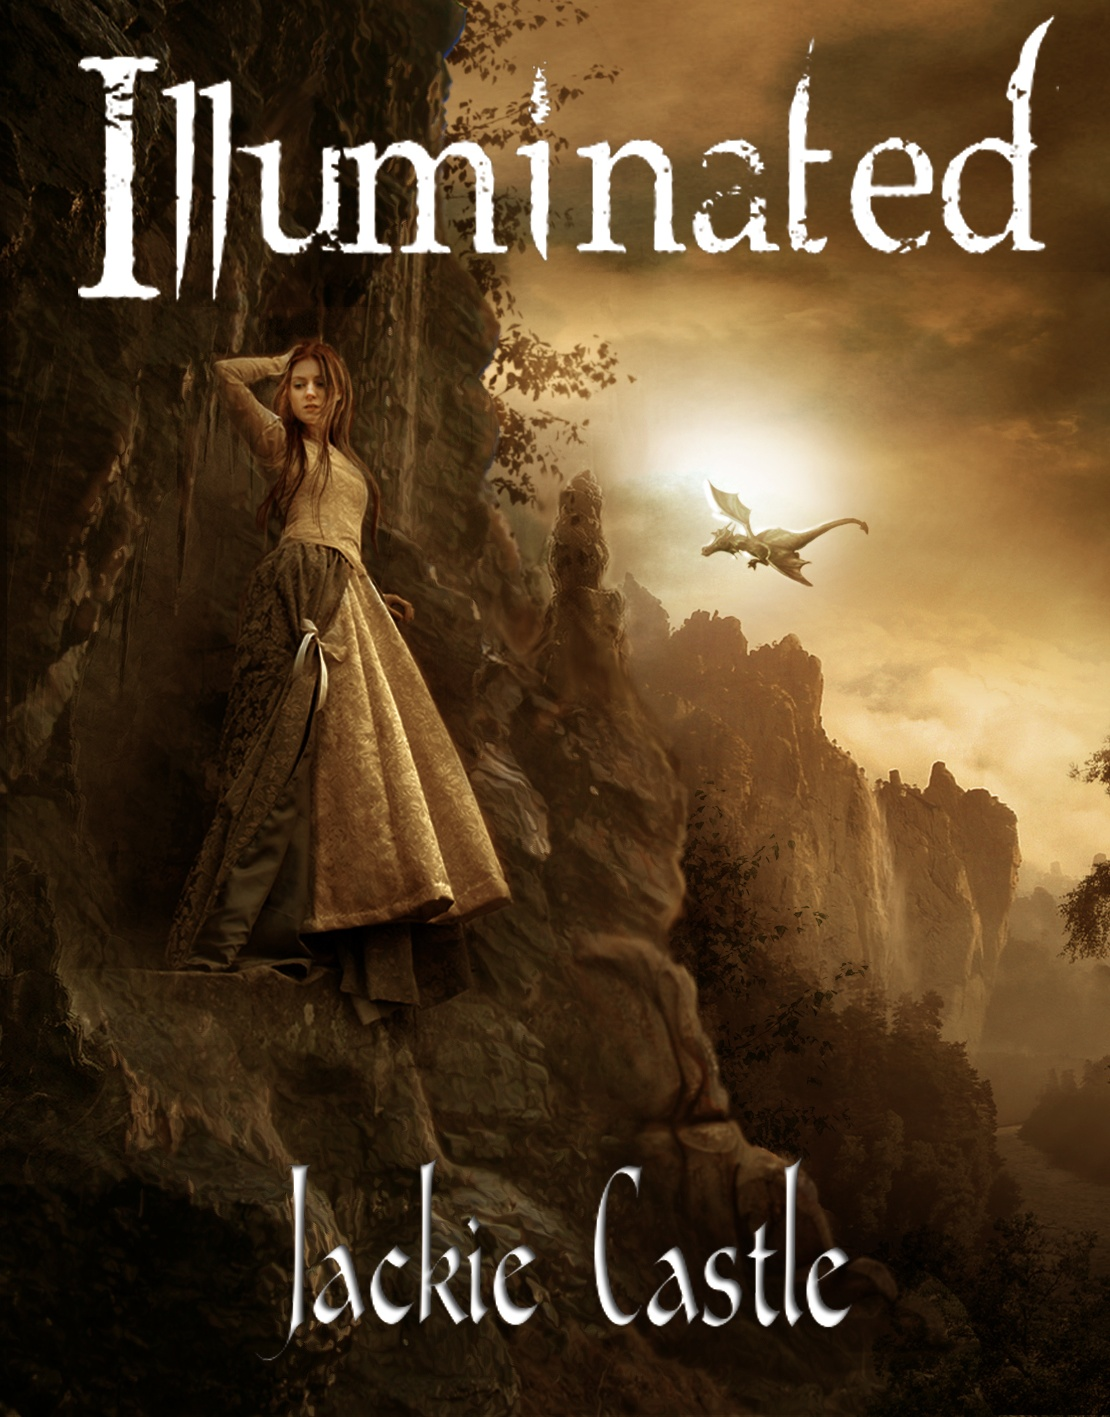 Published Works: Illuminated by Jackie Castle